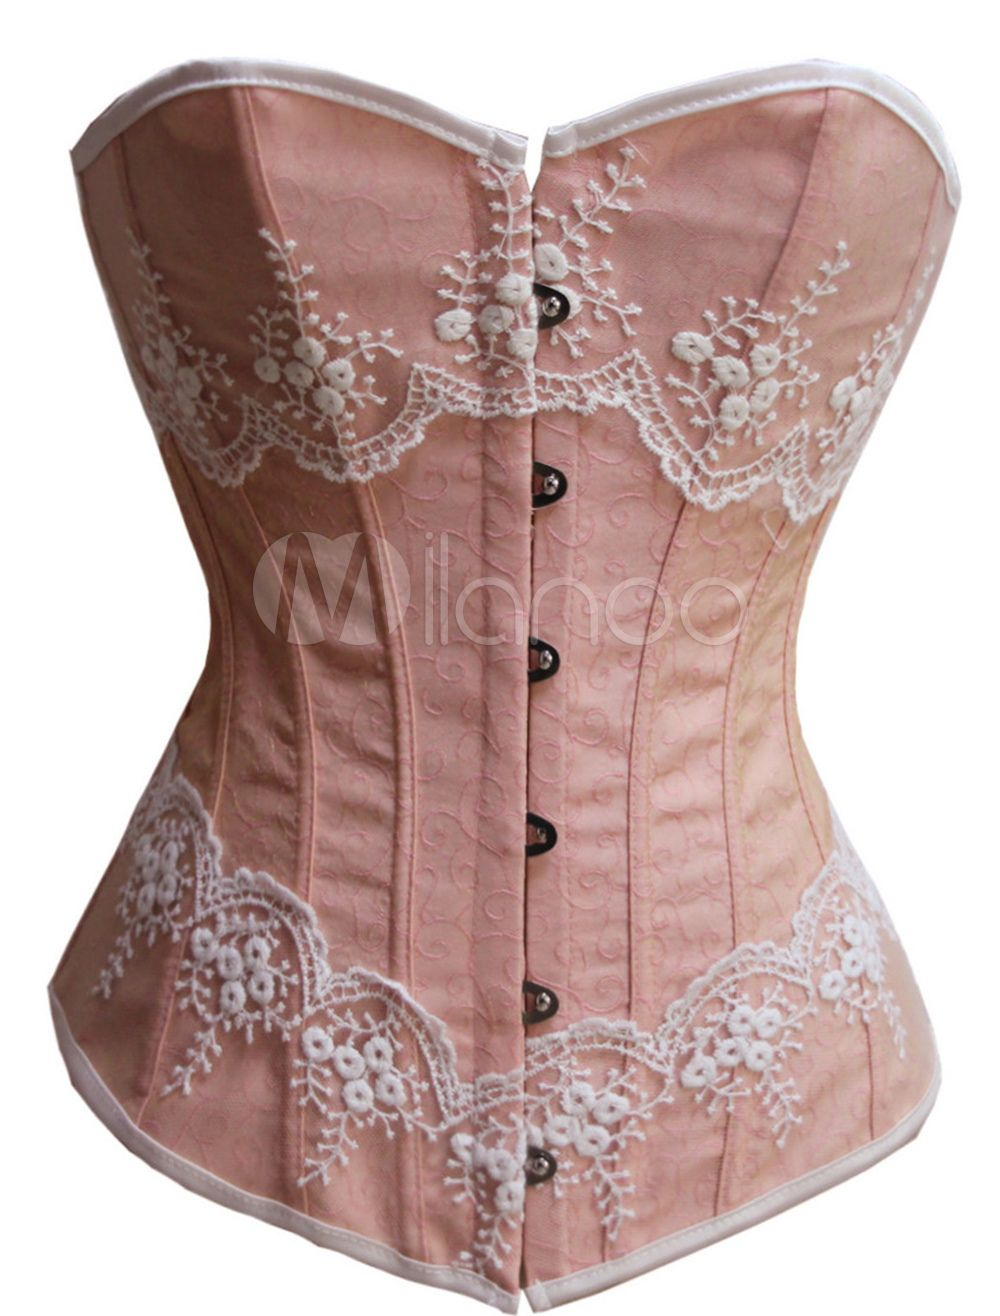 747b63c8eba Victorian Boned Corsets With Lace Trim in 2019